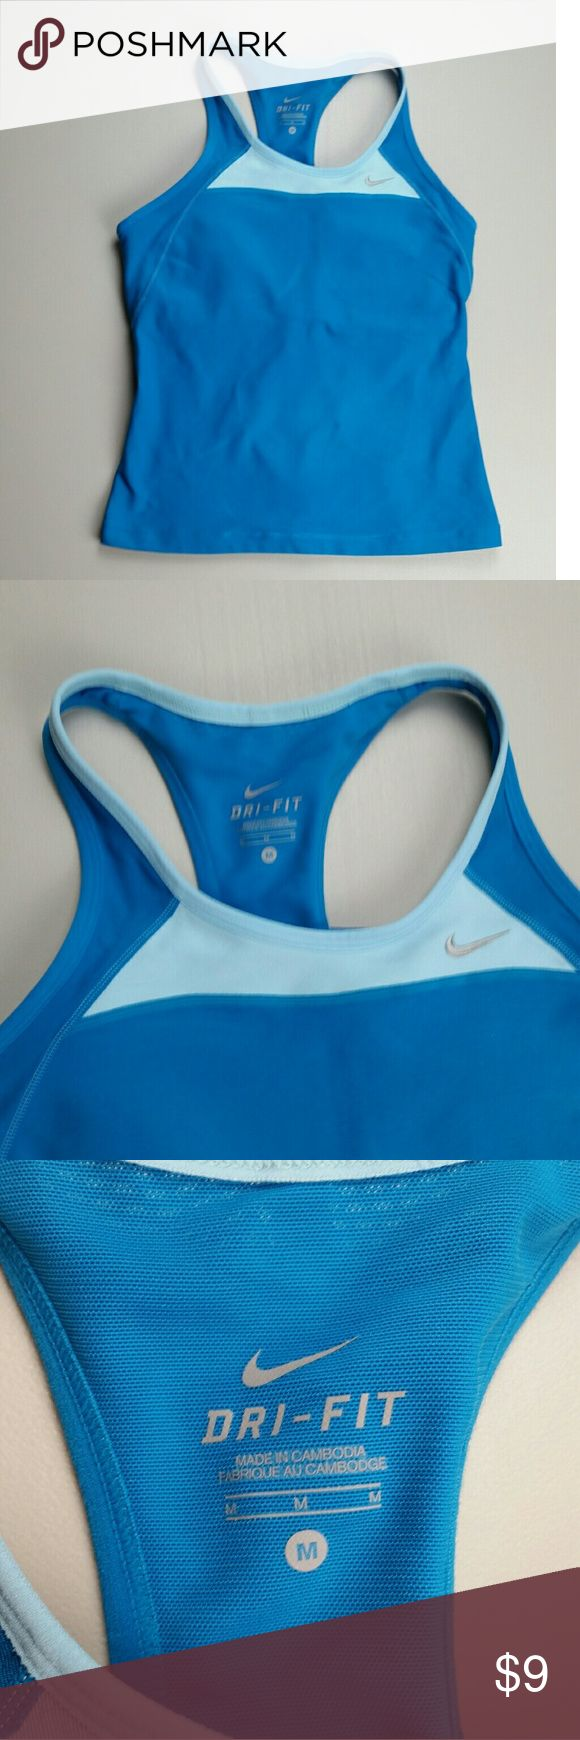 Nike tank top Women's Dri Fit Nike tank top with built in bar (shown in picture 5) size m blue Nike Tops Tank Tops